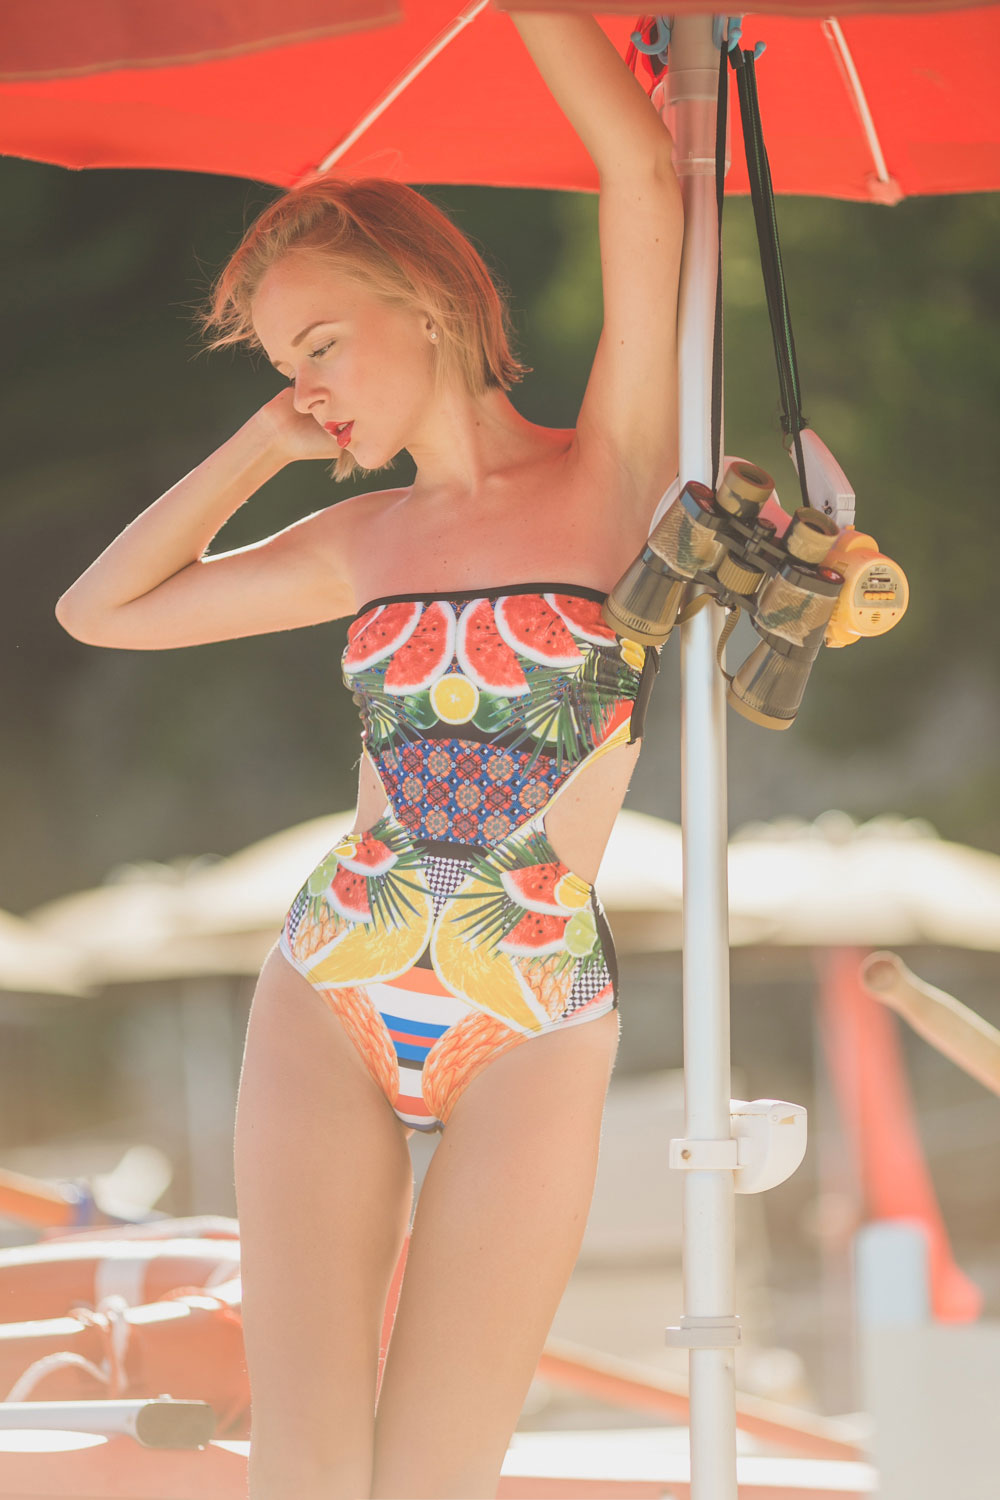 darya-kamalova-thecablook-fashion-lifestyle-blogger-from-thecablook-com-in-baia-dei-faraglioni-in-puglia-south-italy-wearing-river-island-watermelon-swimming-suit-and-lisp-sunglasses-3532